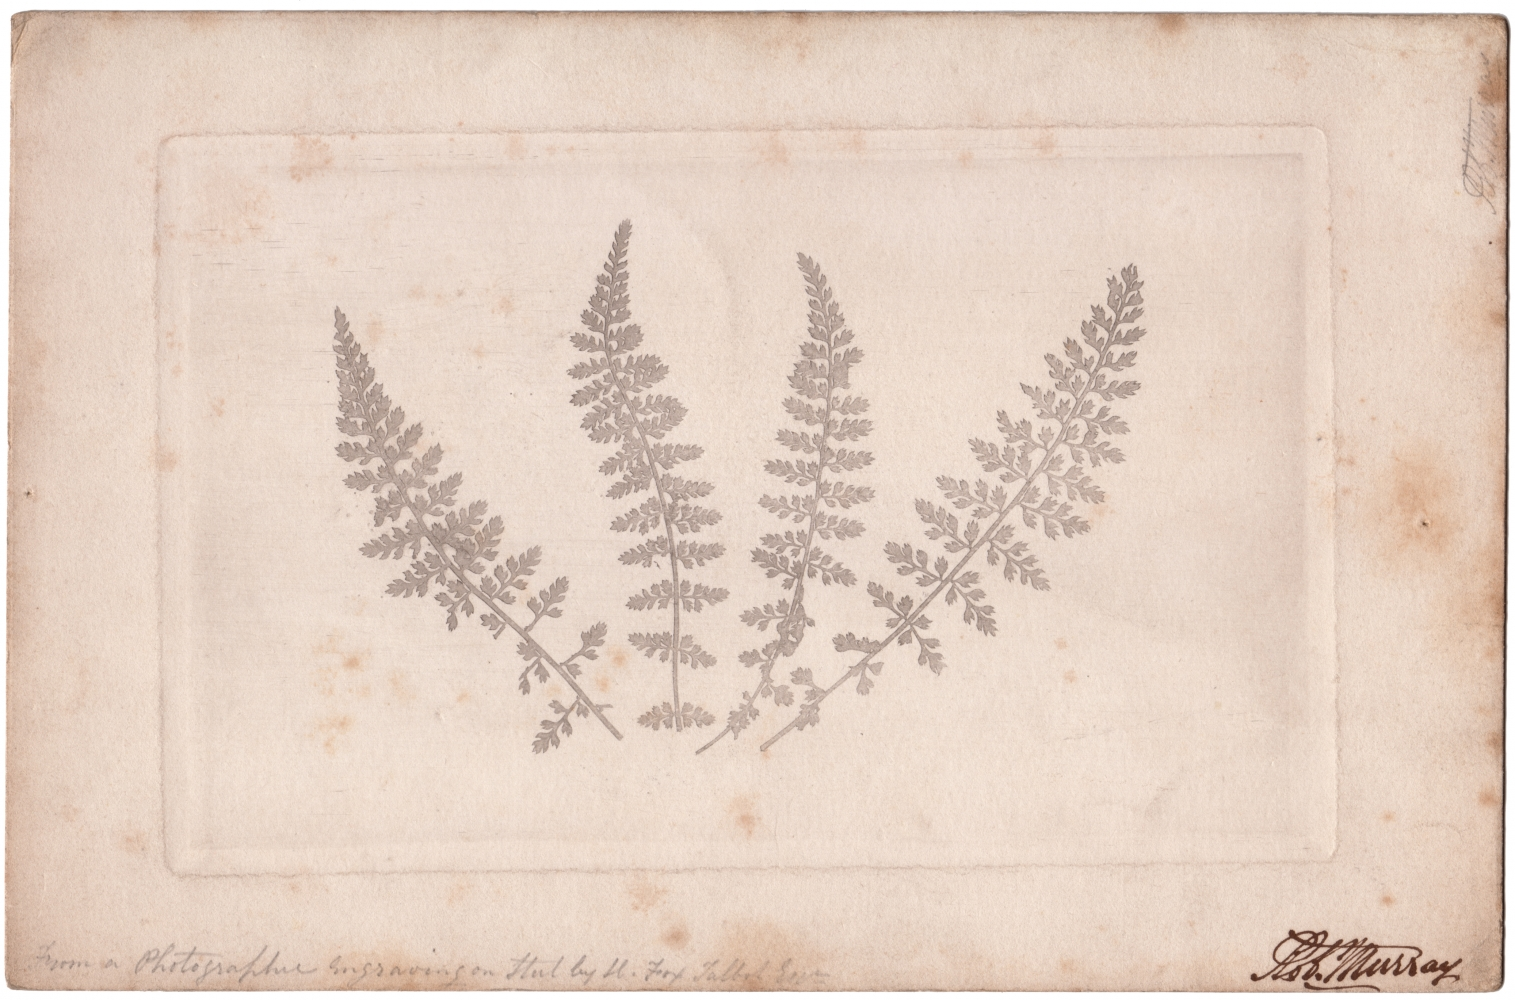 """William Henry Fox TALBOT (English, 1800-1877) Four ferns, 1852 or soon after Photographic engraving 12.8 x 20.3 cm plate on 17.0 x 25.9 cm paper Inscribed """"Rob. Murray"""" in ink and """"From a Photographic Engraving on Steel by H. Fox Talbot Esqr"""" in pencil"""